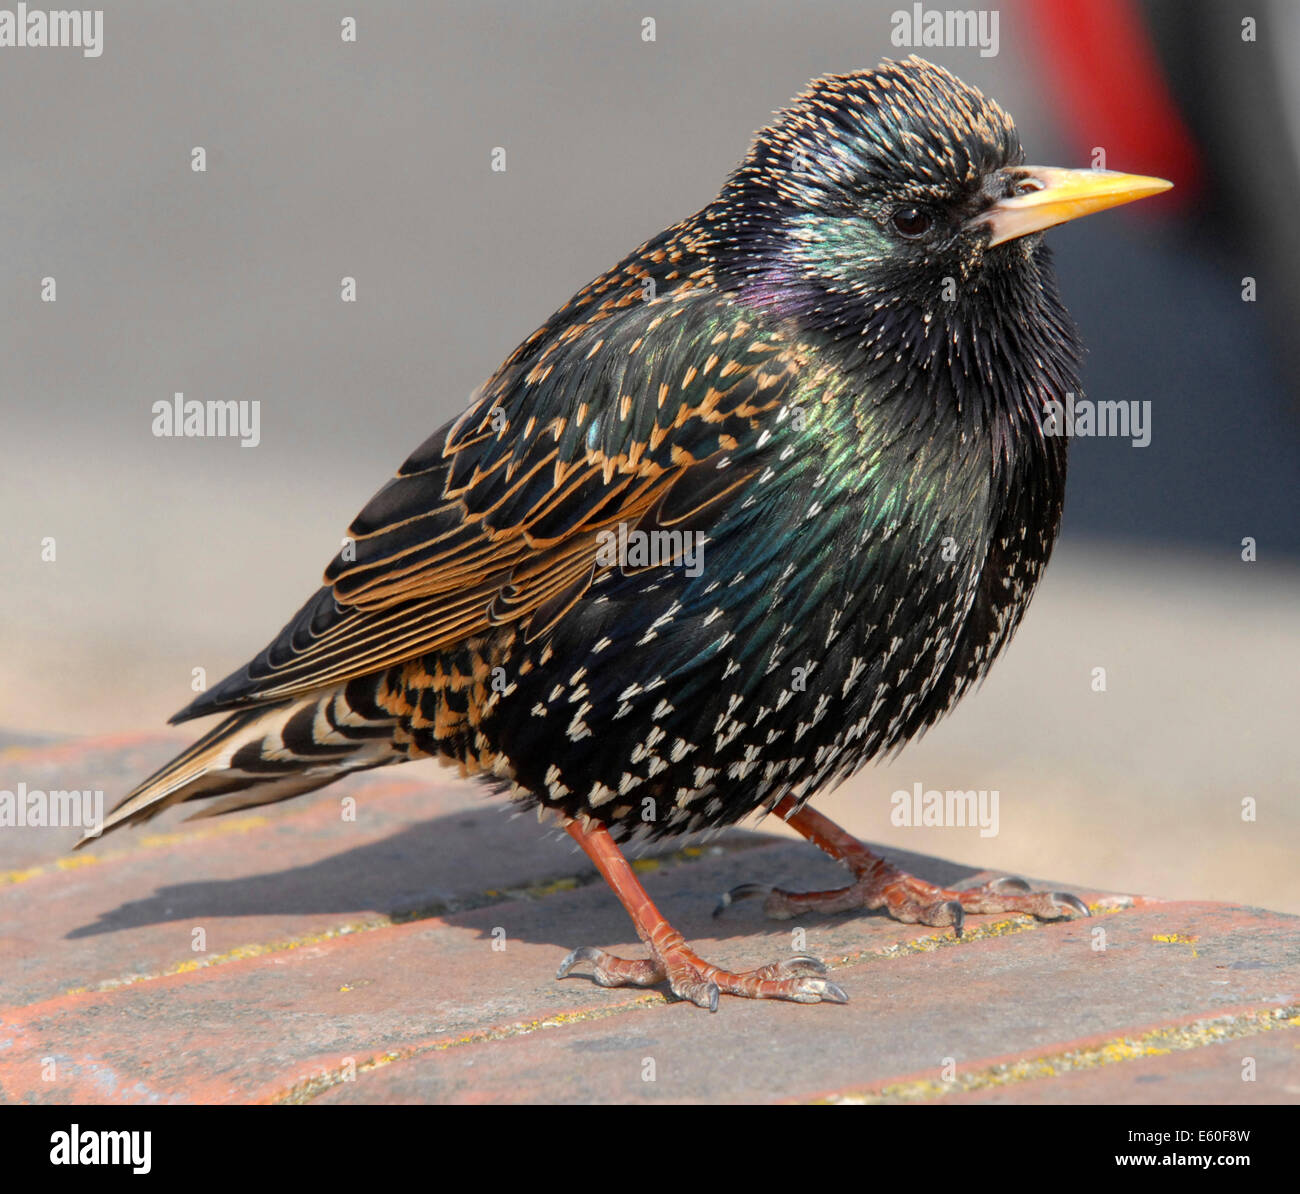 STARLING (Sturnus vulgaris vulgaris) well loved UK bird now in decline - this is an adult male. From the archives - Stock Image